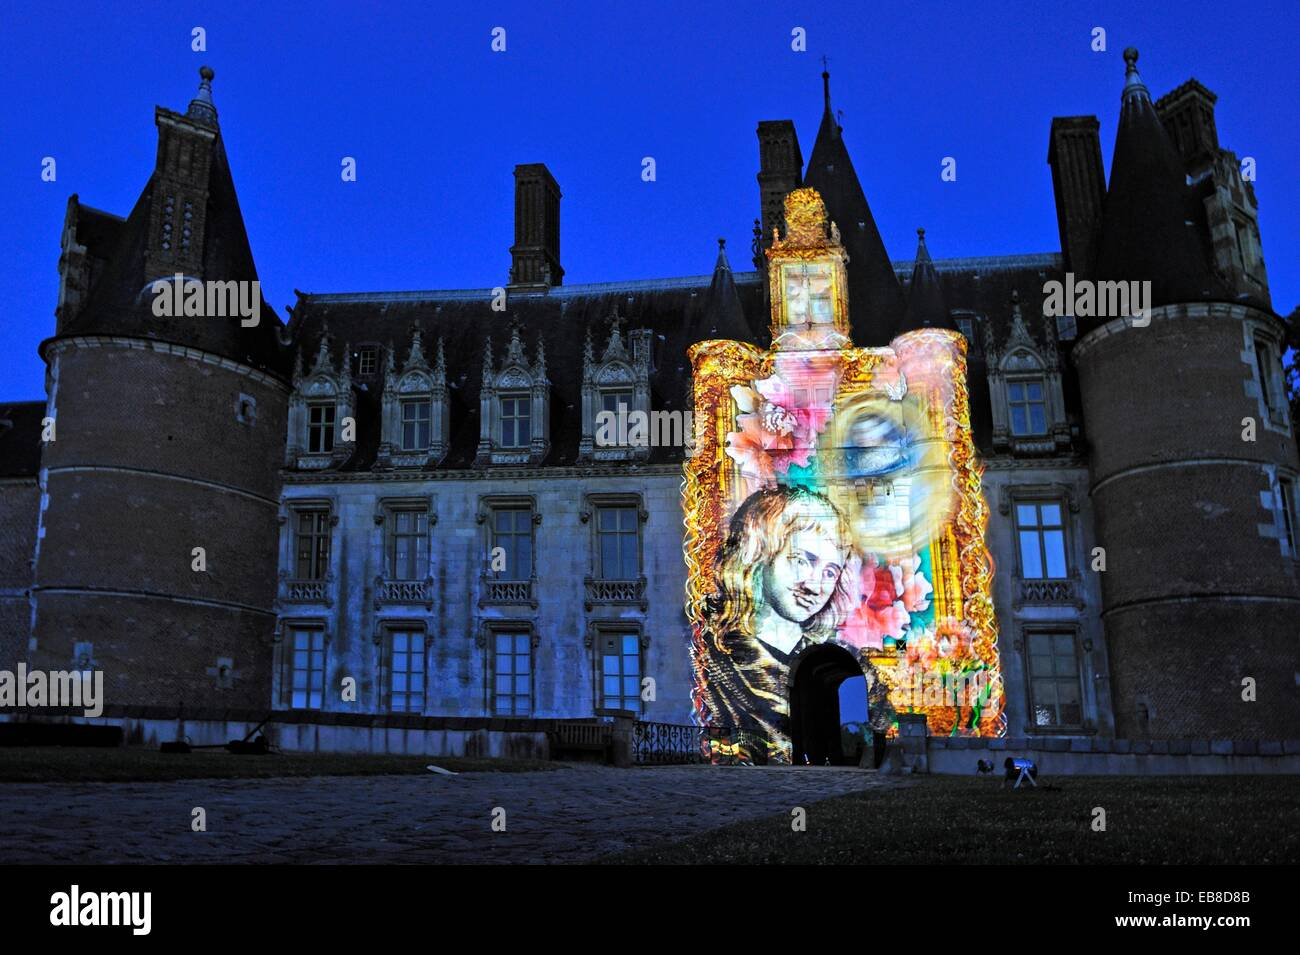 video art projection titled Madame de Maintenon or the Shadow Sun by French artist Xavier de Richemont at Chateau - Stock Image